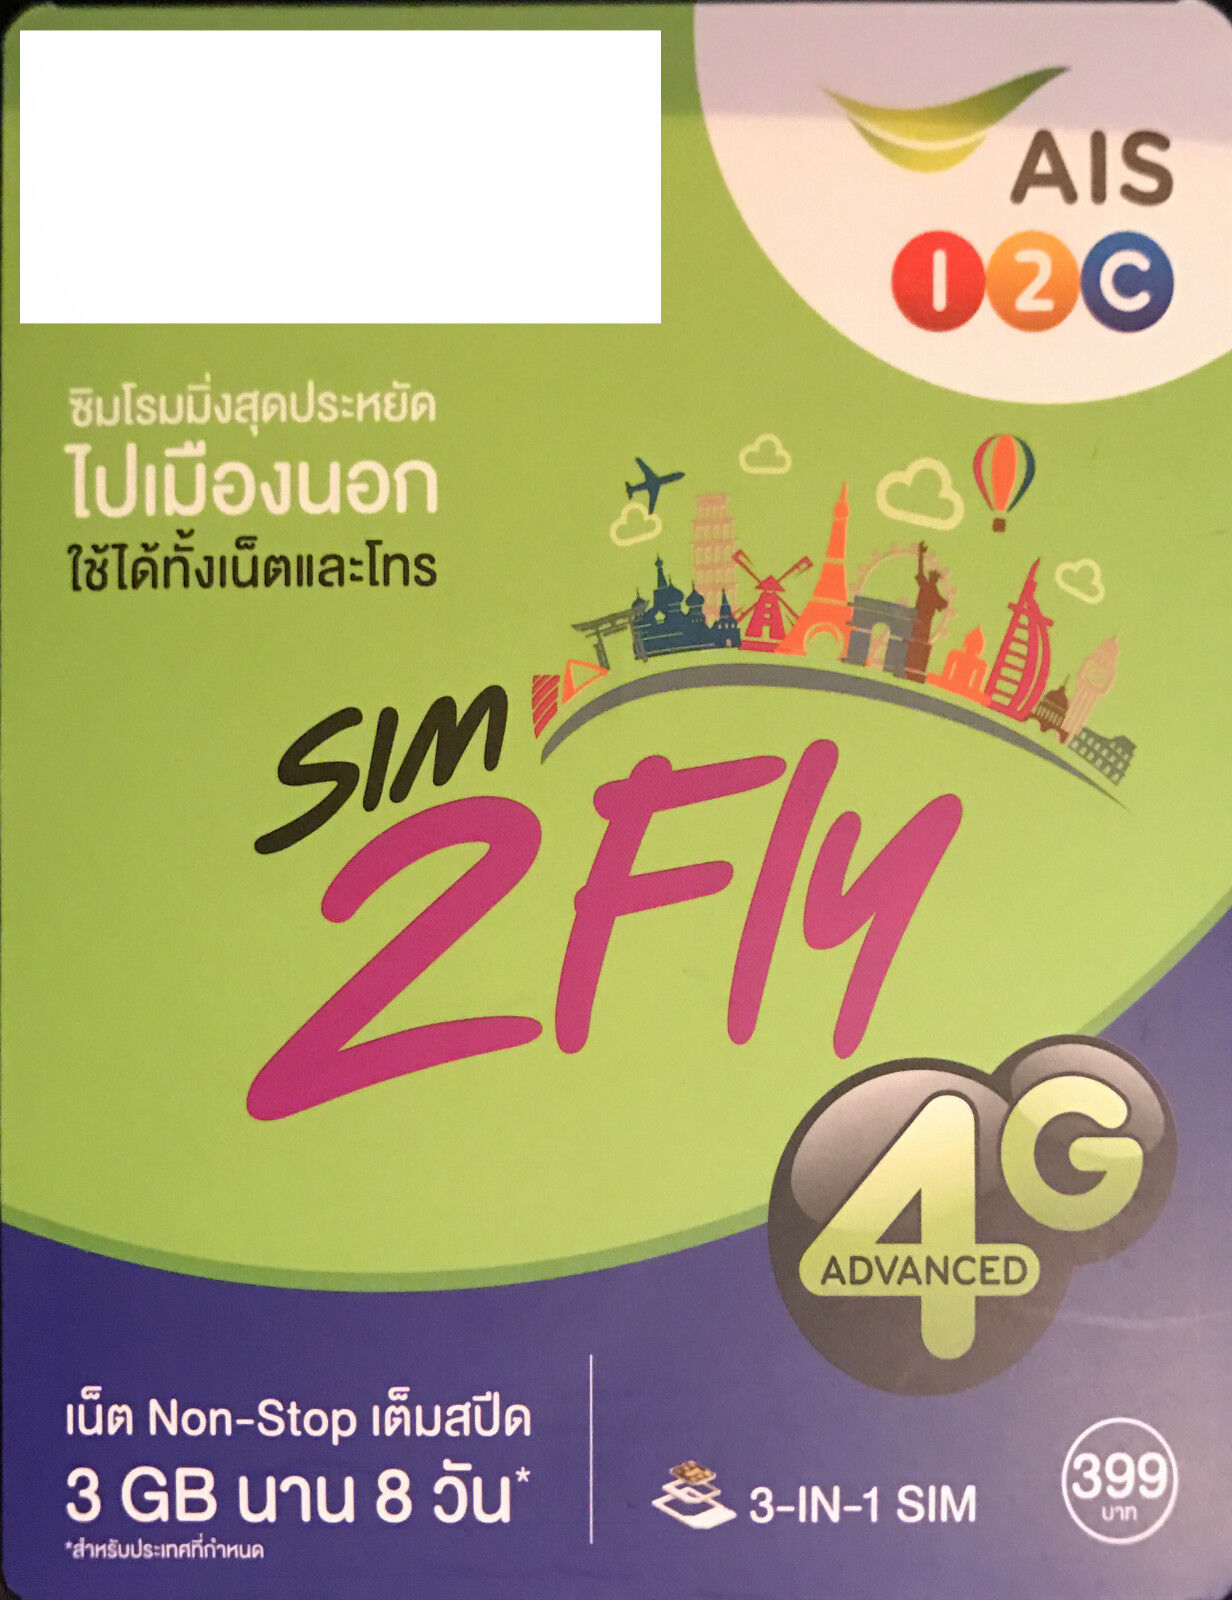 Asia AIS Travel SIM Sim2fly 4g/3g Unlimited Data Card 8 Days Roaming Cost  Saving